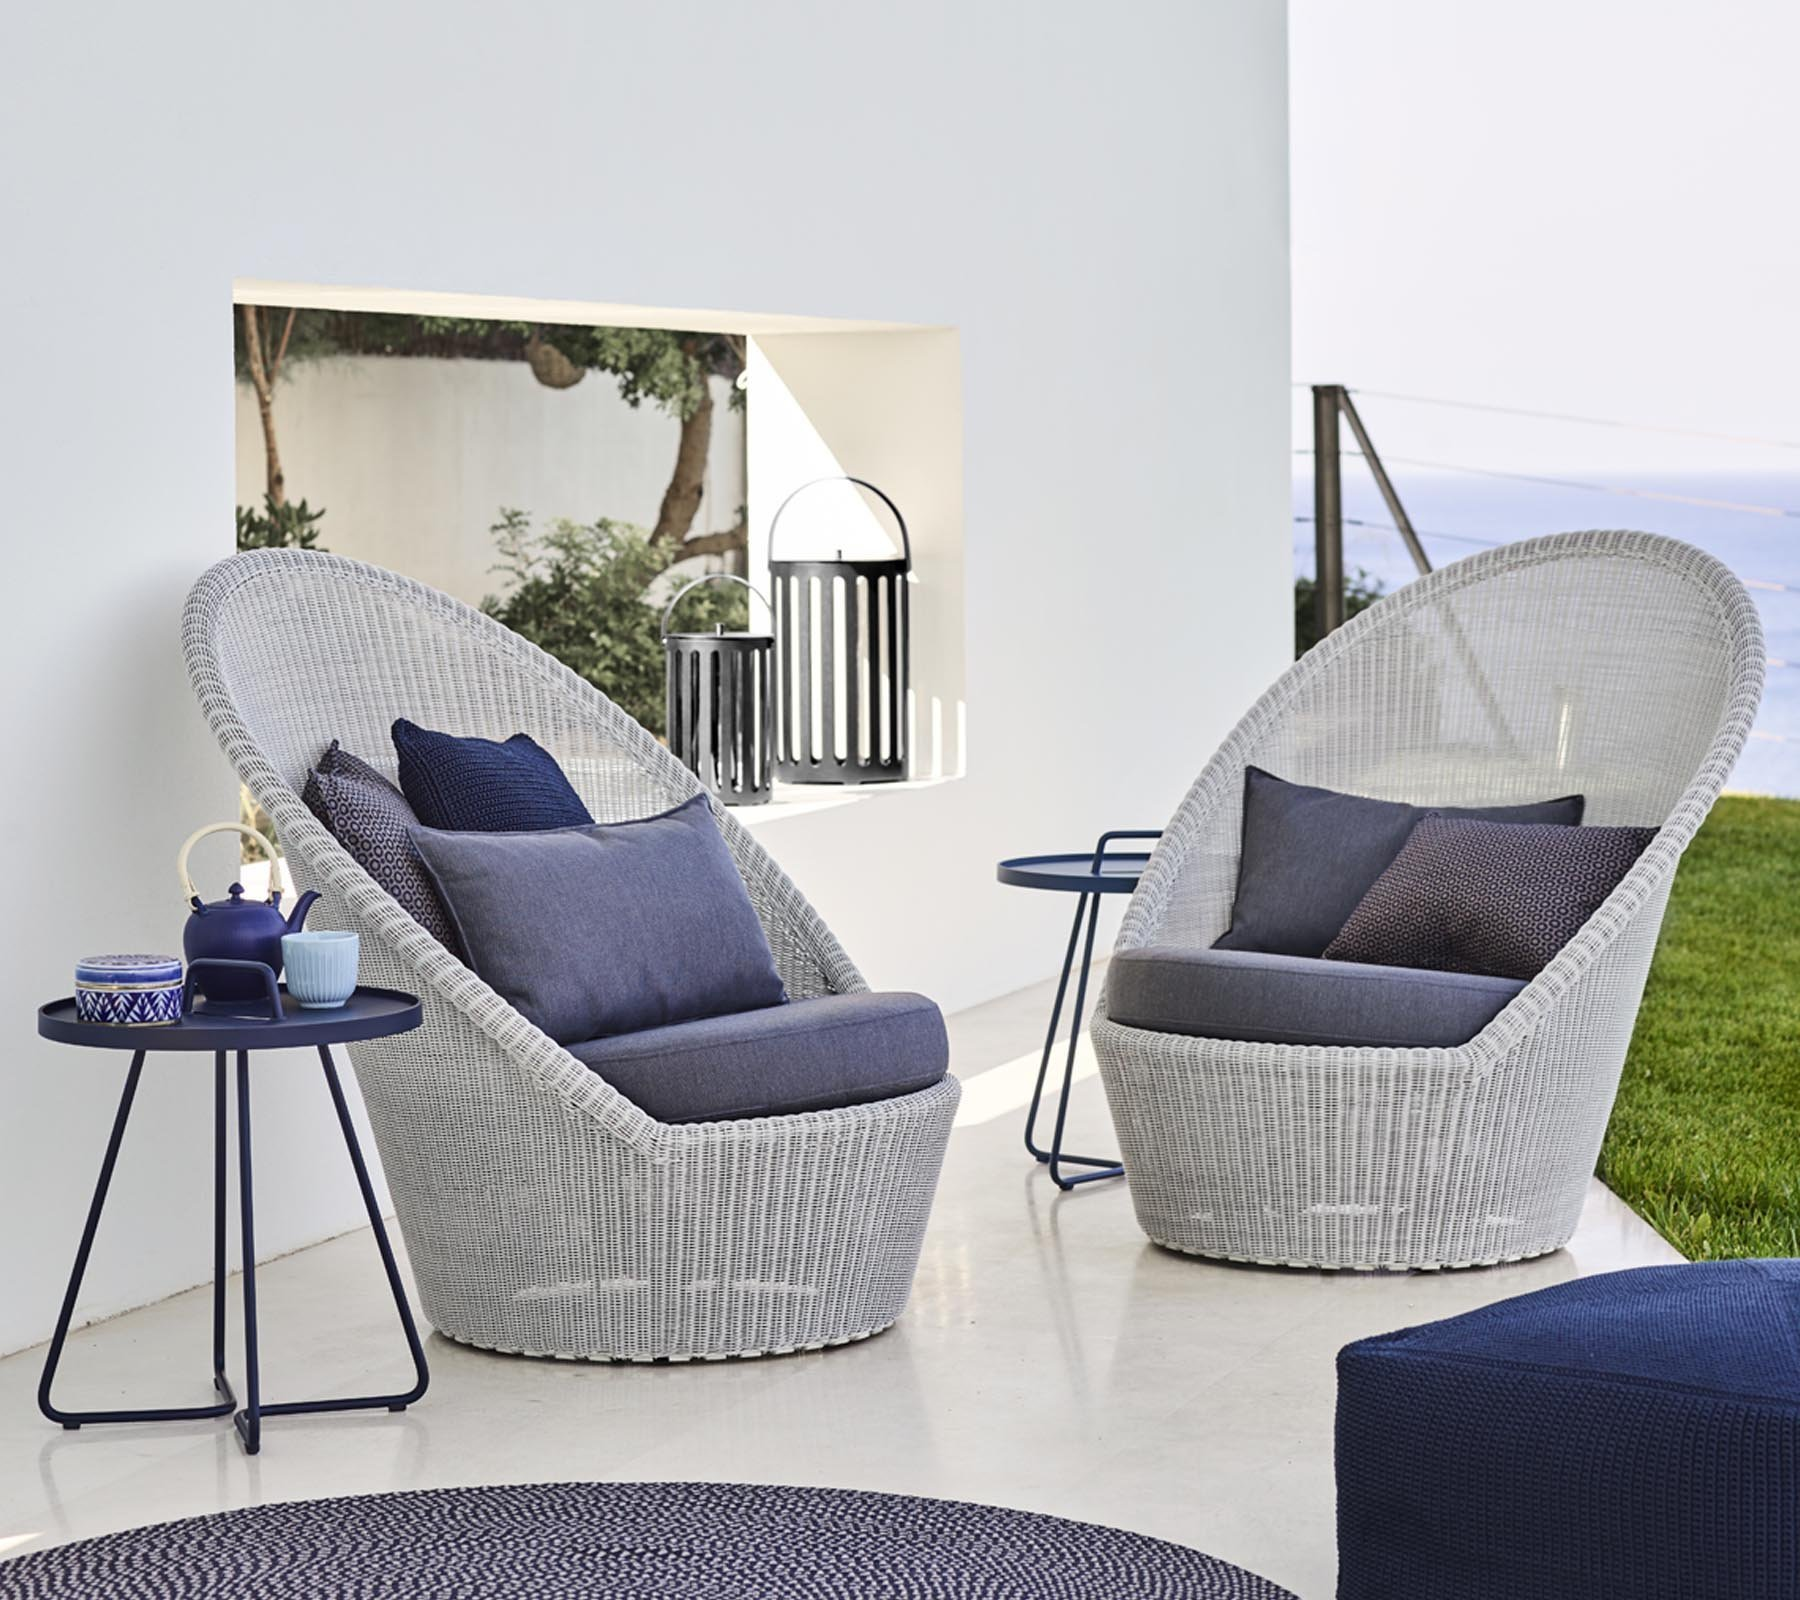 Kingston Sunchair lounge from Cane-line